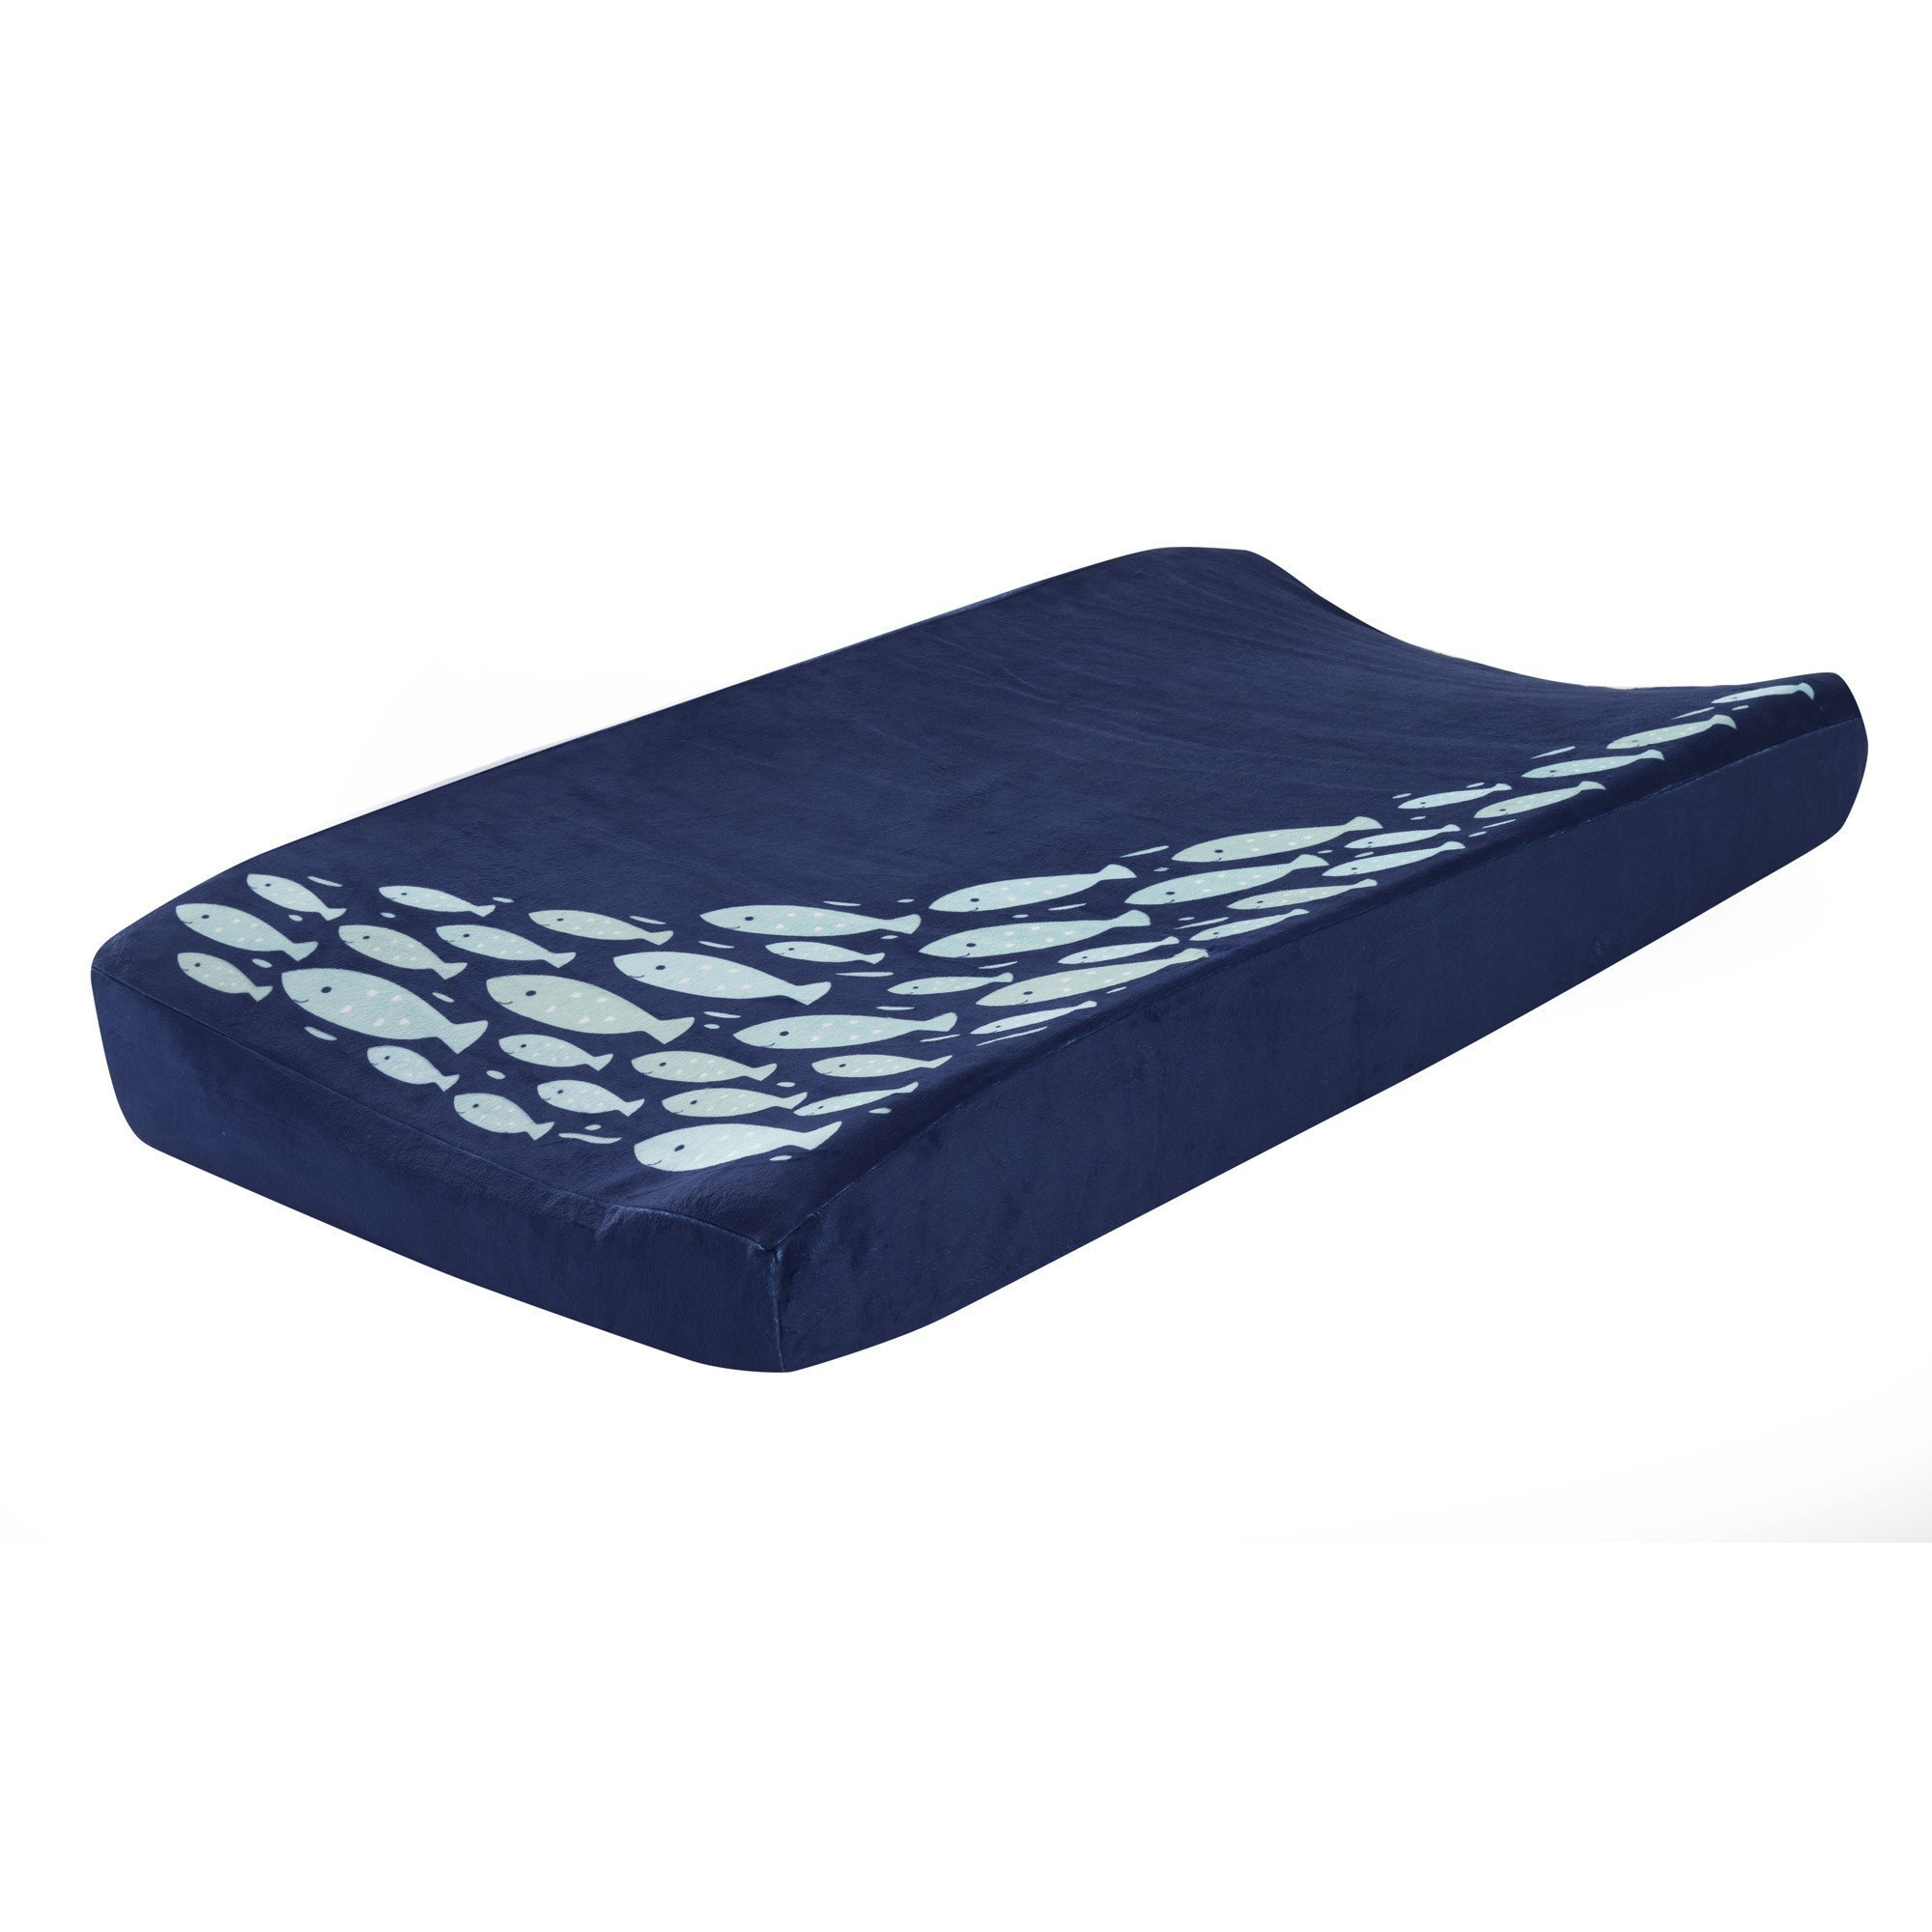 Lambs & Ivy Oceania Diaper Changing Pad Cover - Blue Fish by Lambs & Ivy